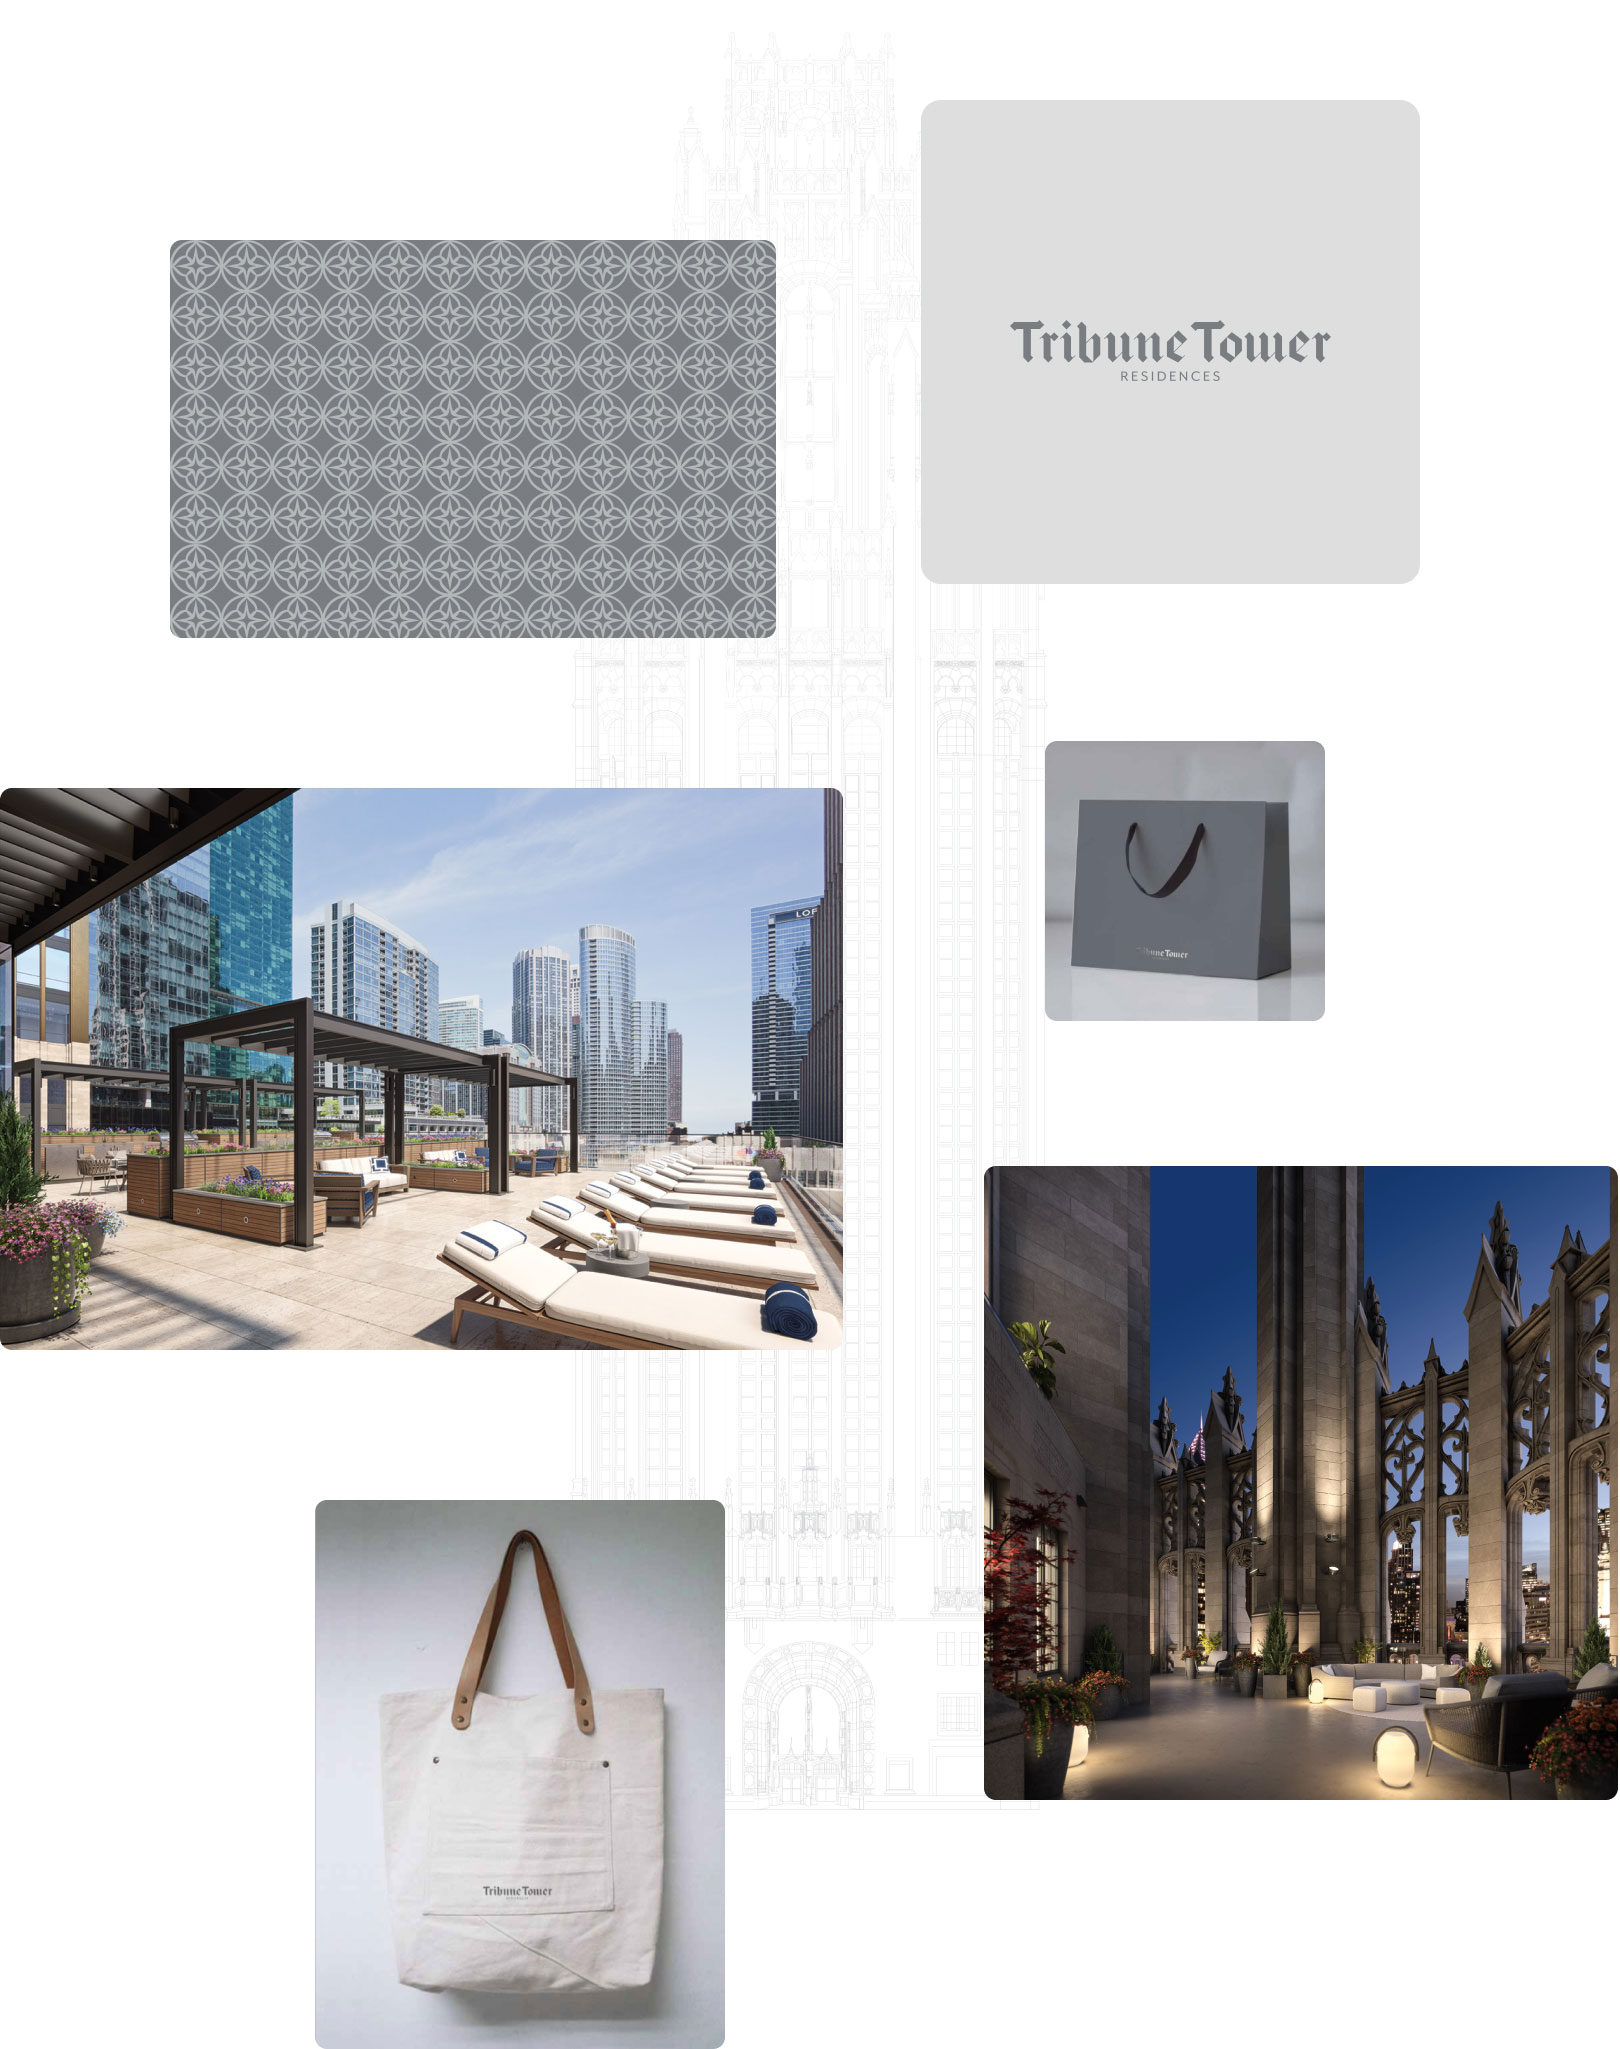 Tribune Tower collage of branding assets